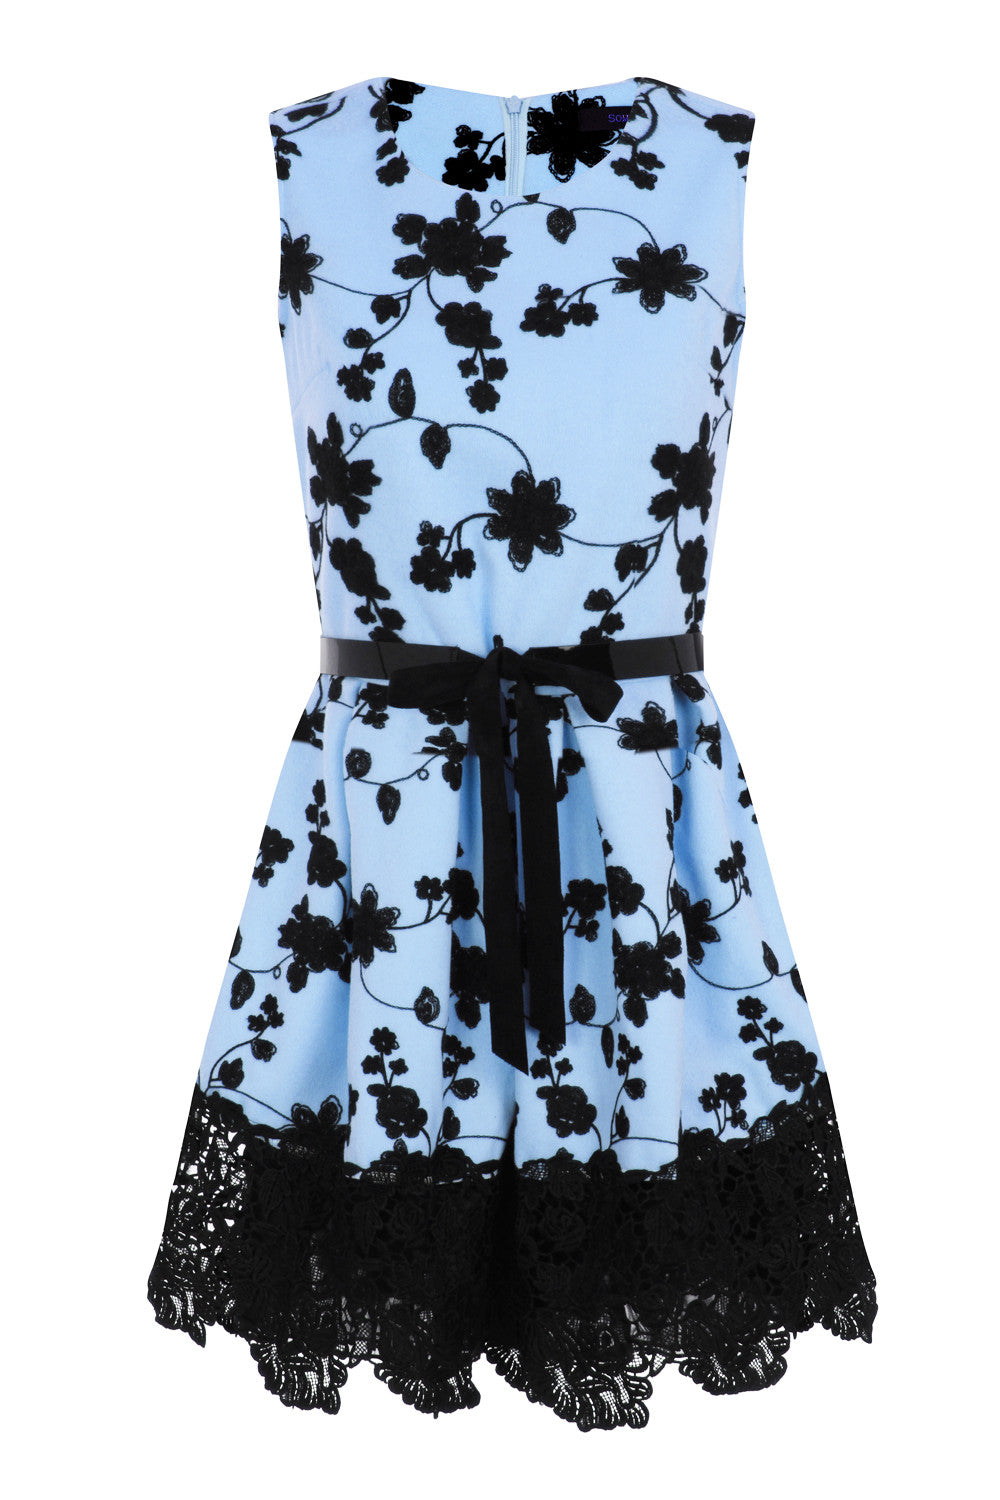 FLORAL EMBROIDERY DRESS - BLUE - Darccy & Soma London